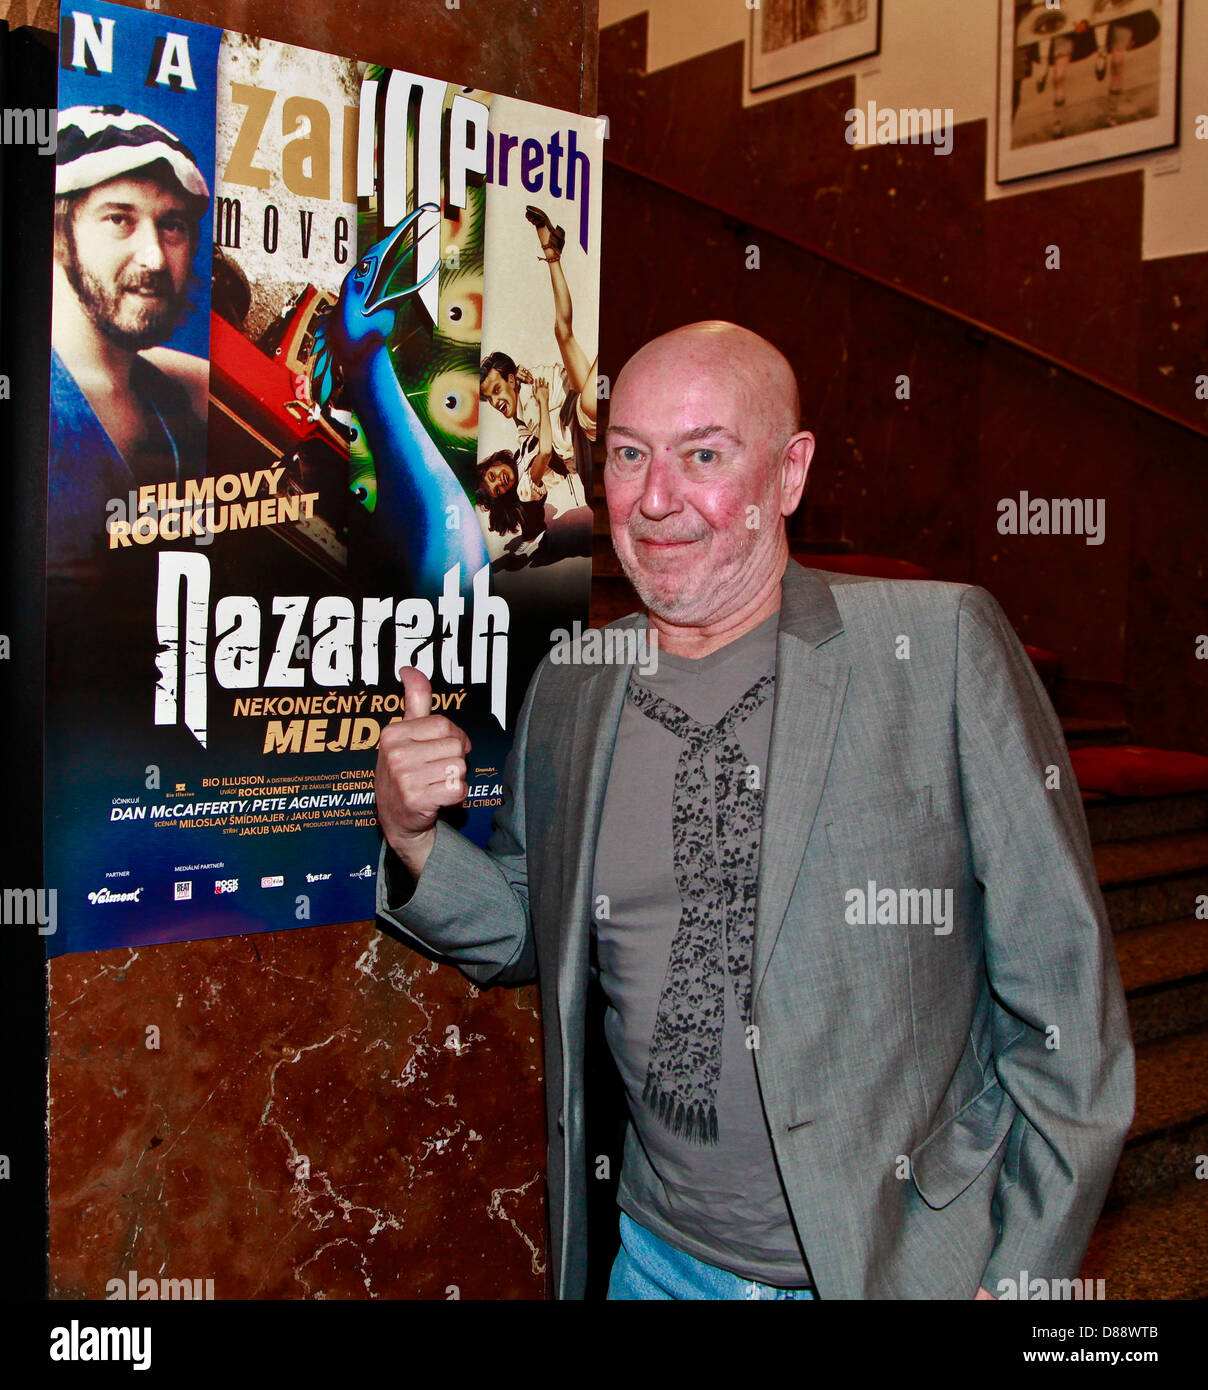 Pete Agnew the Scottish hard rock band Nazareth seen at the premiere documentary about them directed by Czech director - Stock Image